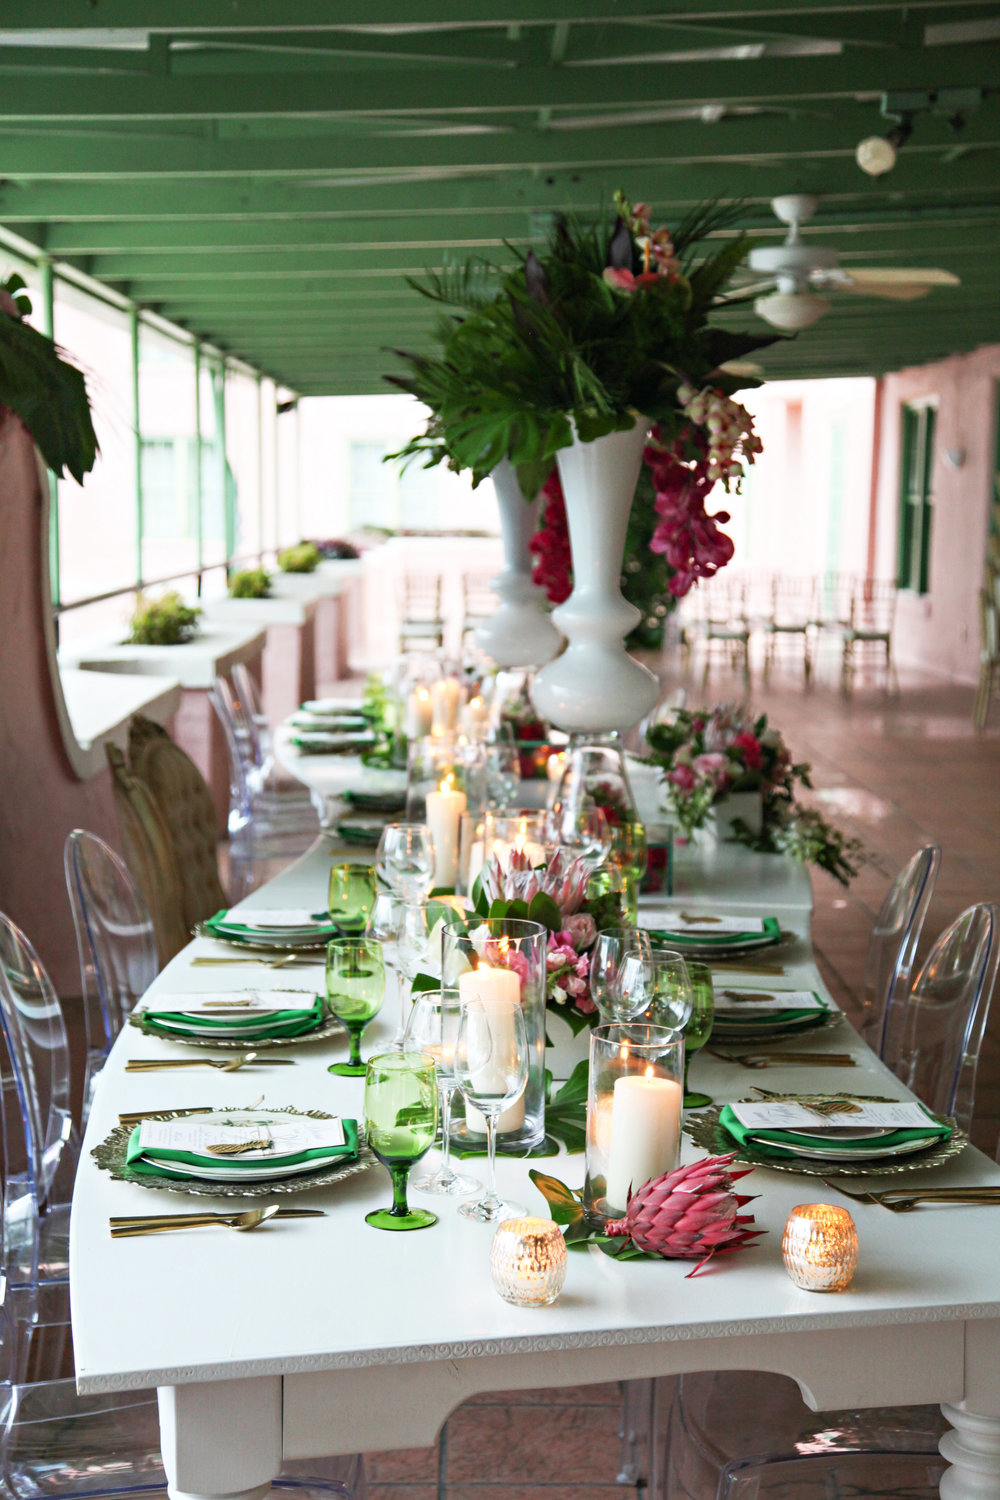 Tropical Pink and Green Reception Setting.jpg